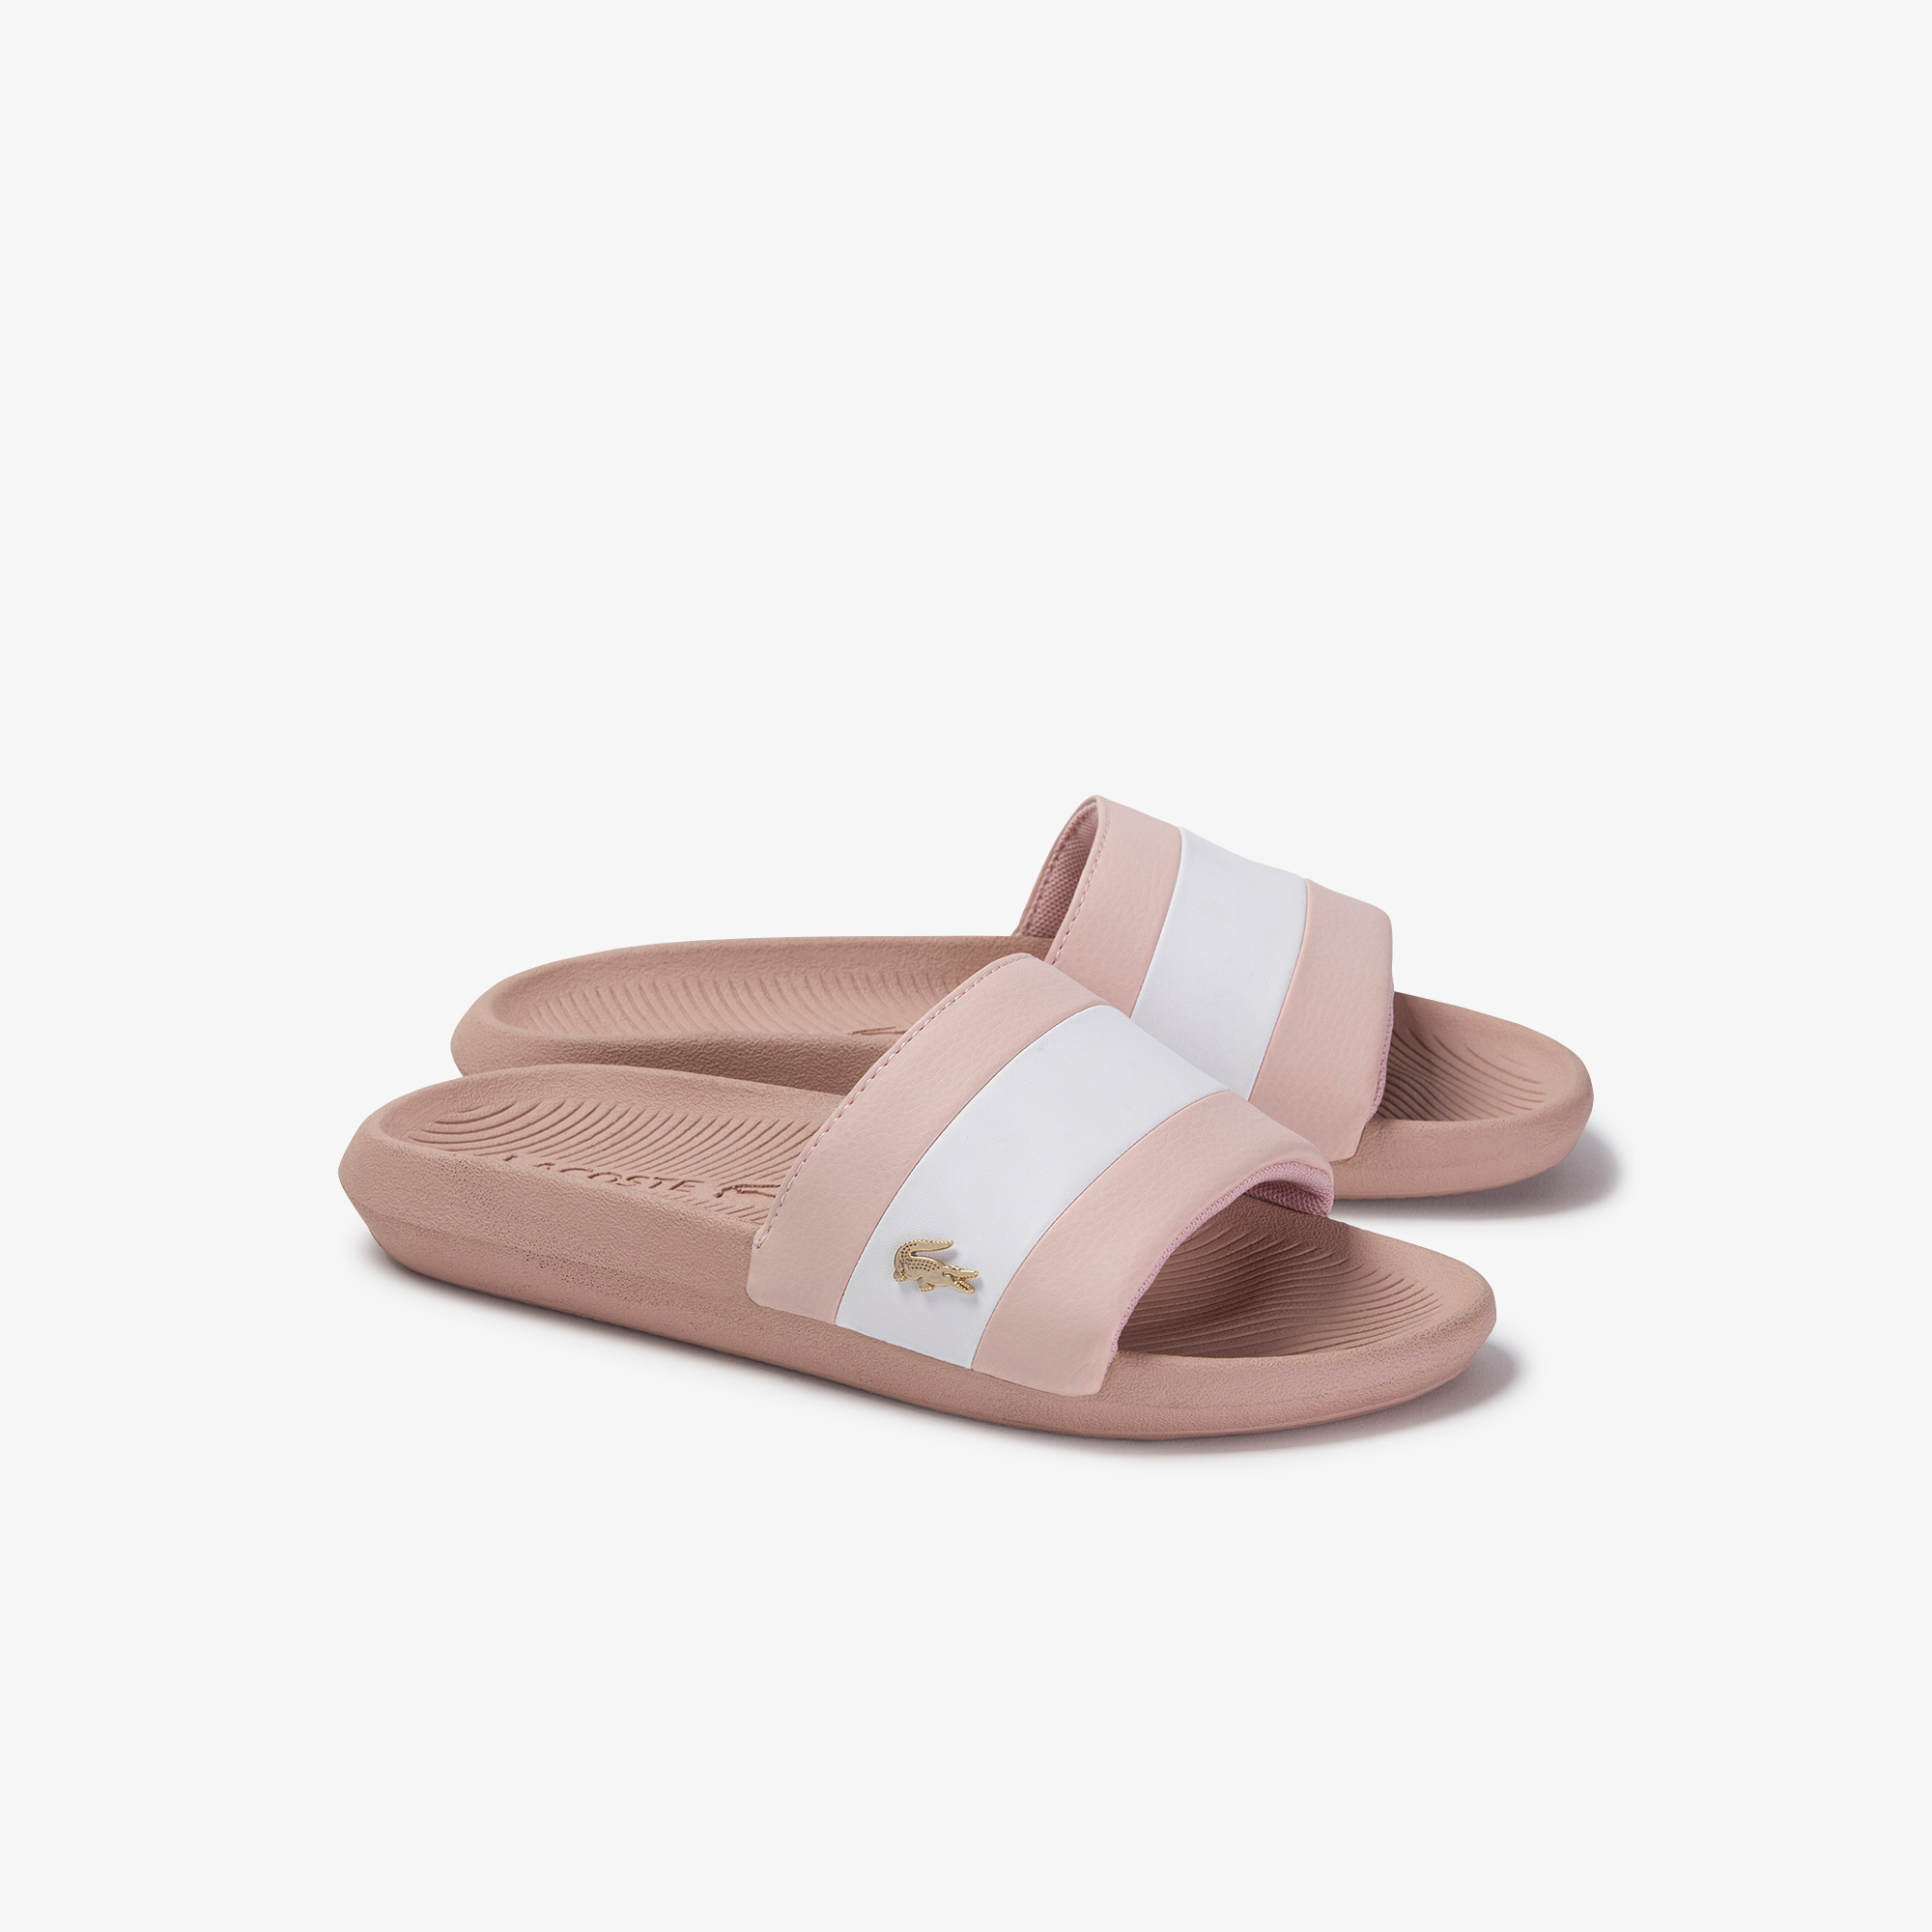 Lacoste Croco Slide 120 3 Us Damskie Slippers